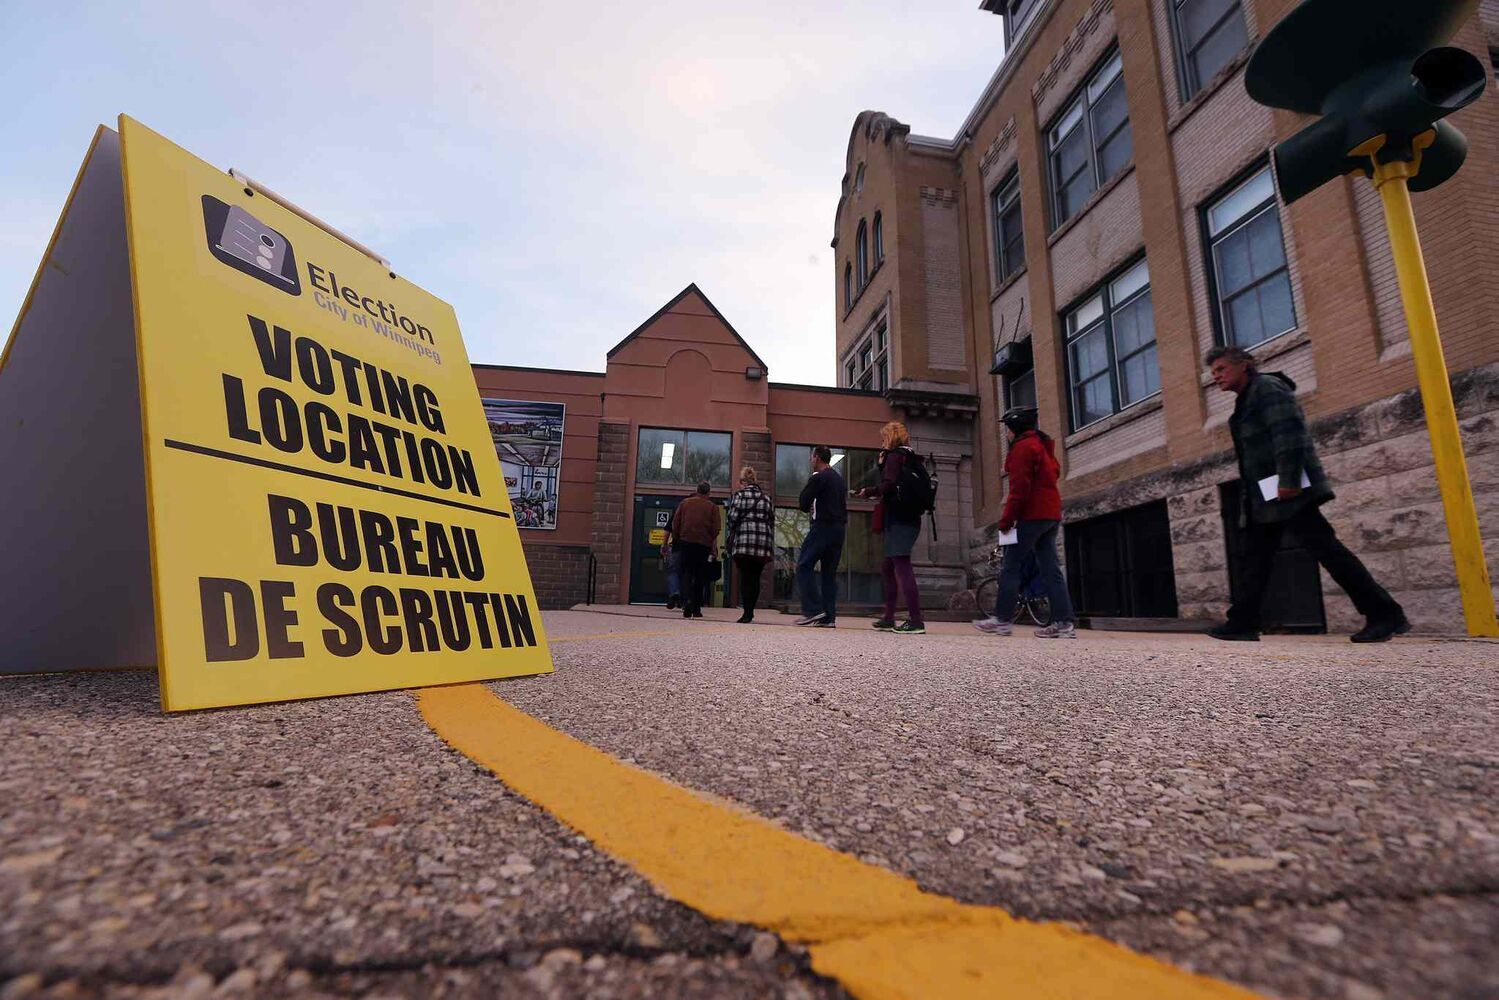 About a dozen people lined up before 8 a.m. at Luxton School polling station to vote today. Voting continues at polling stations around the city until 8 p.m.  (KEN GIGLIOTTI / WINNIPEG FREE PRESS)